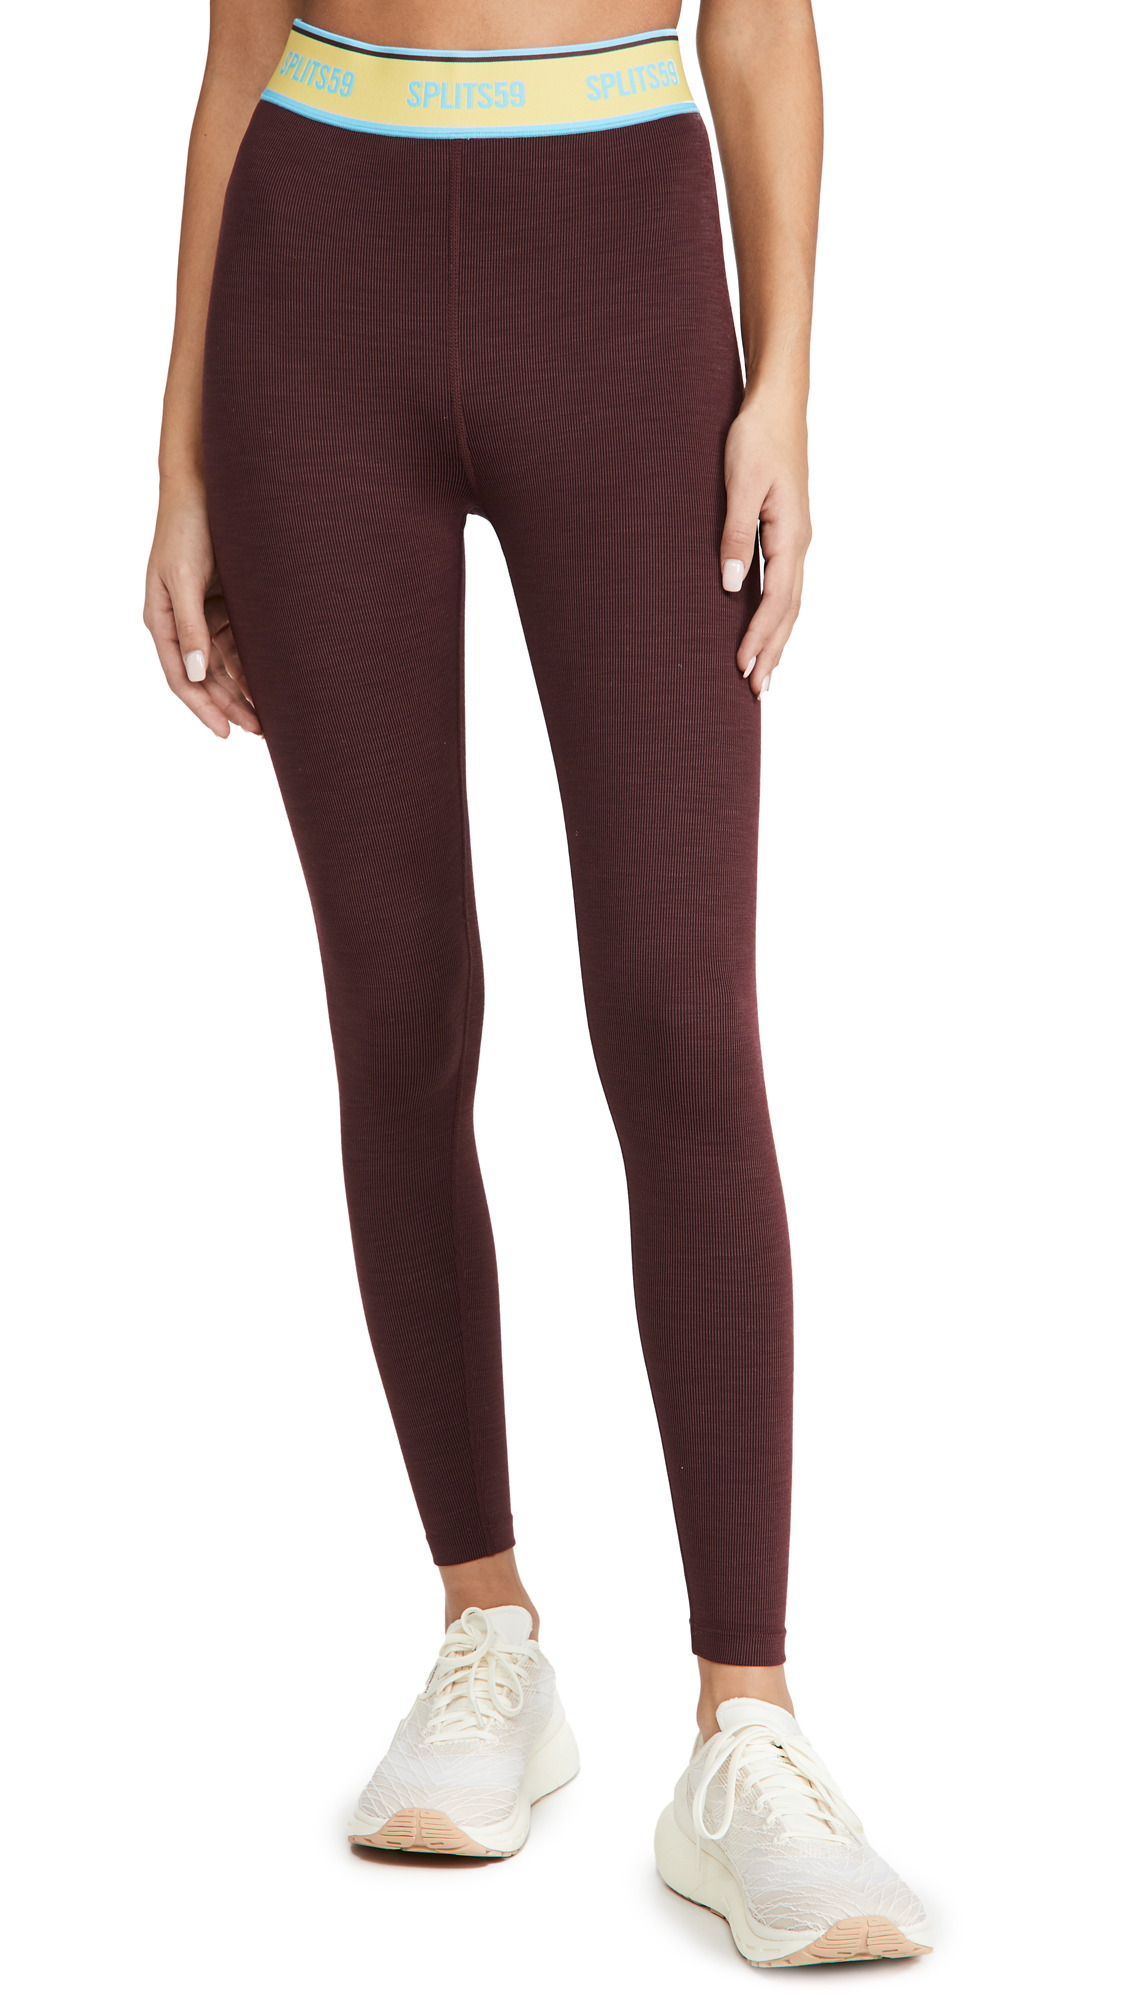 Splits59 Bailey Active Rib Leggings